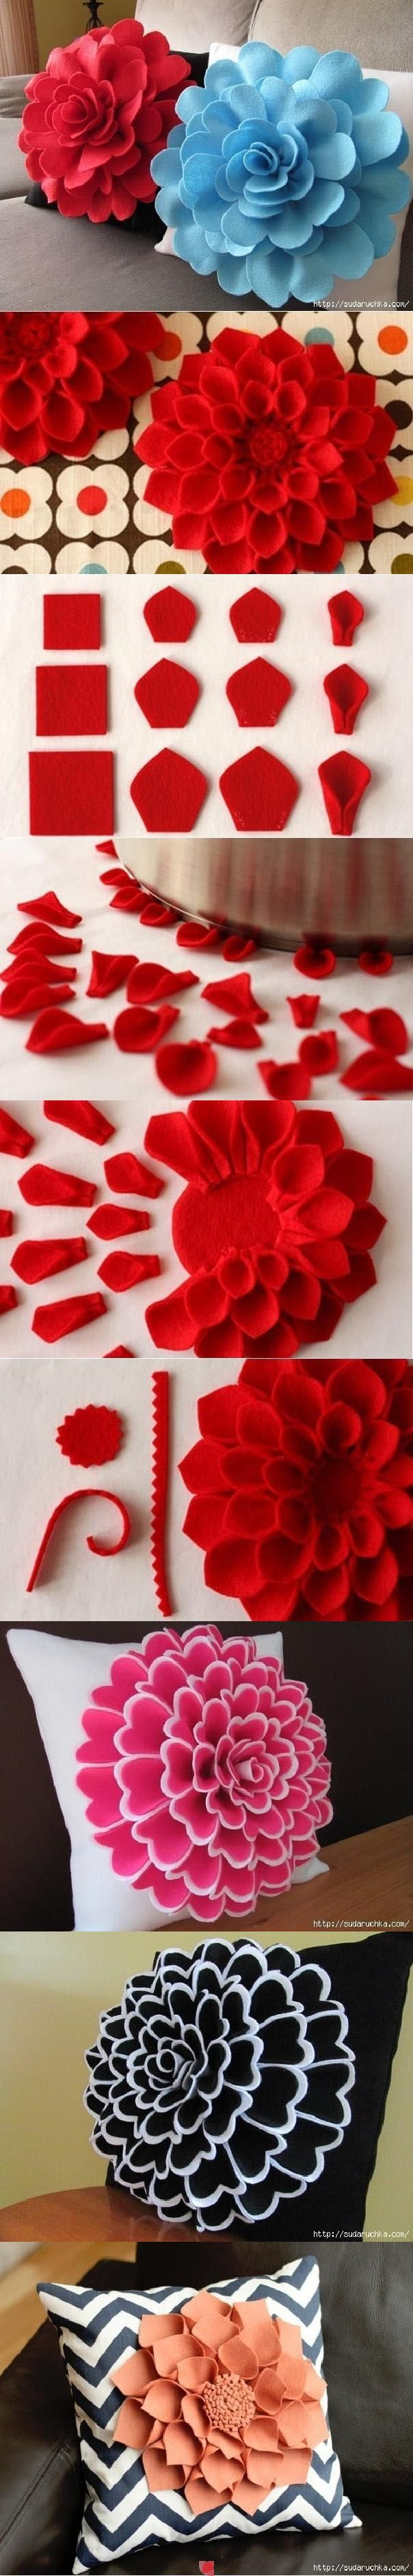 Cakes or couches, this flower pattern works great with gumpaste or felt!